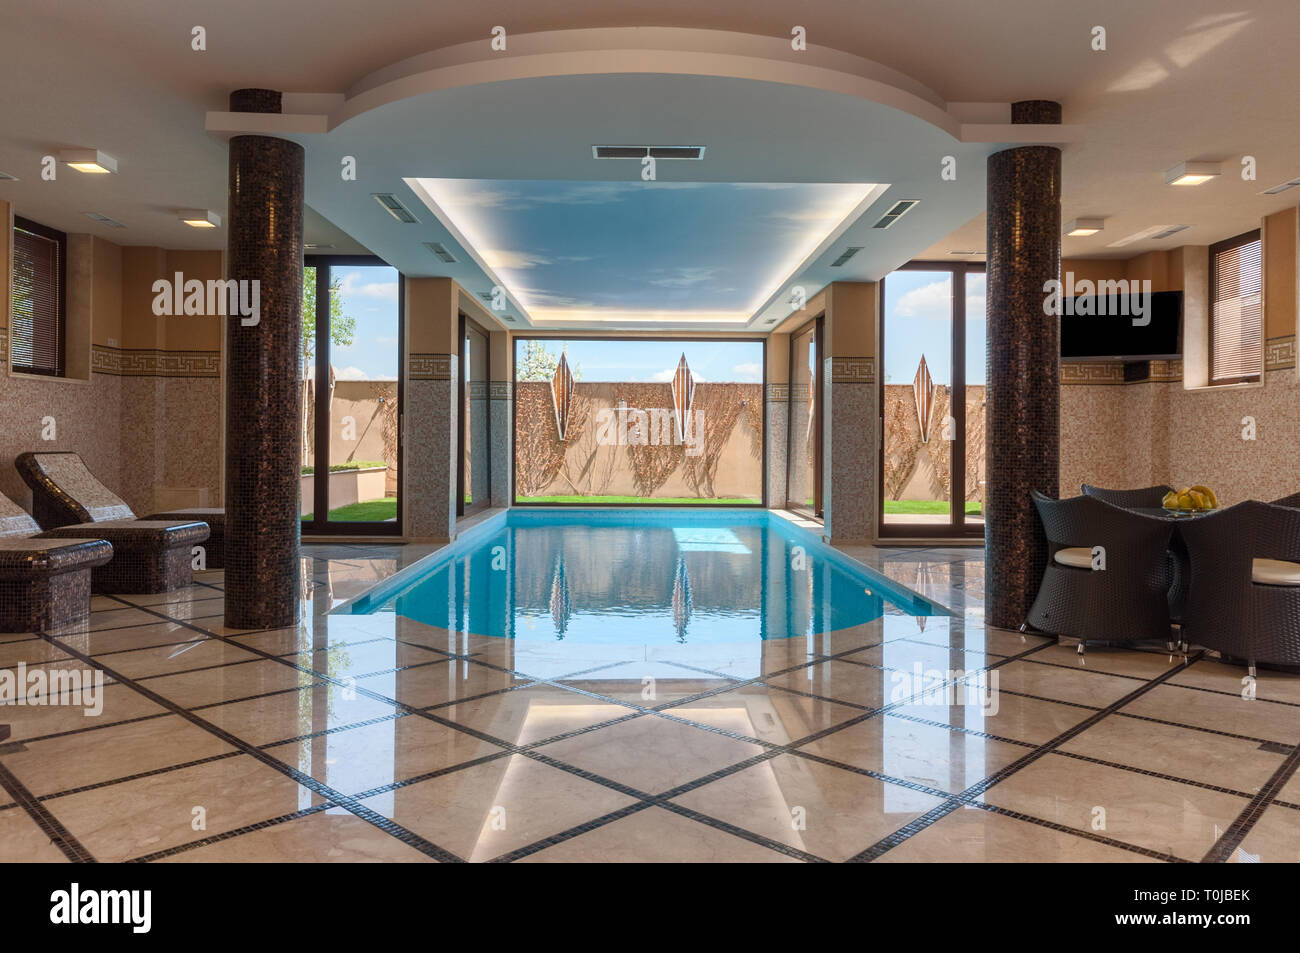 Luxurious Marble Home Spa Interior With Indoor Swimming Pool In Modern Contemporary House Non Us Interior Stock Photo Alamy